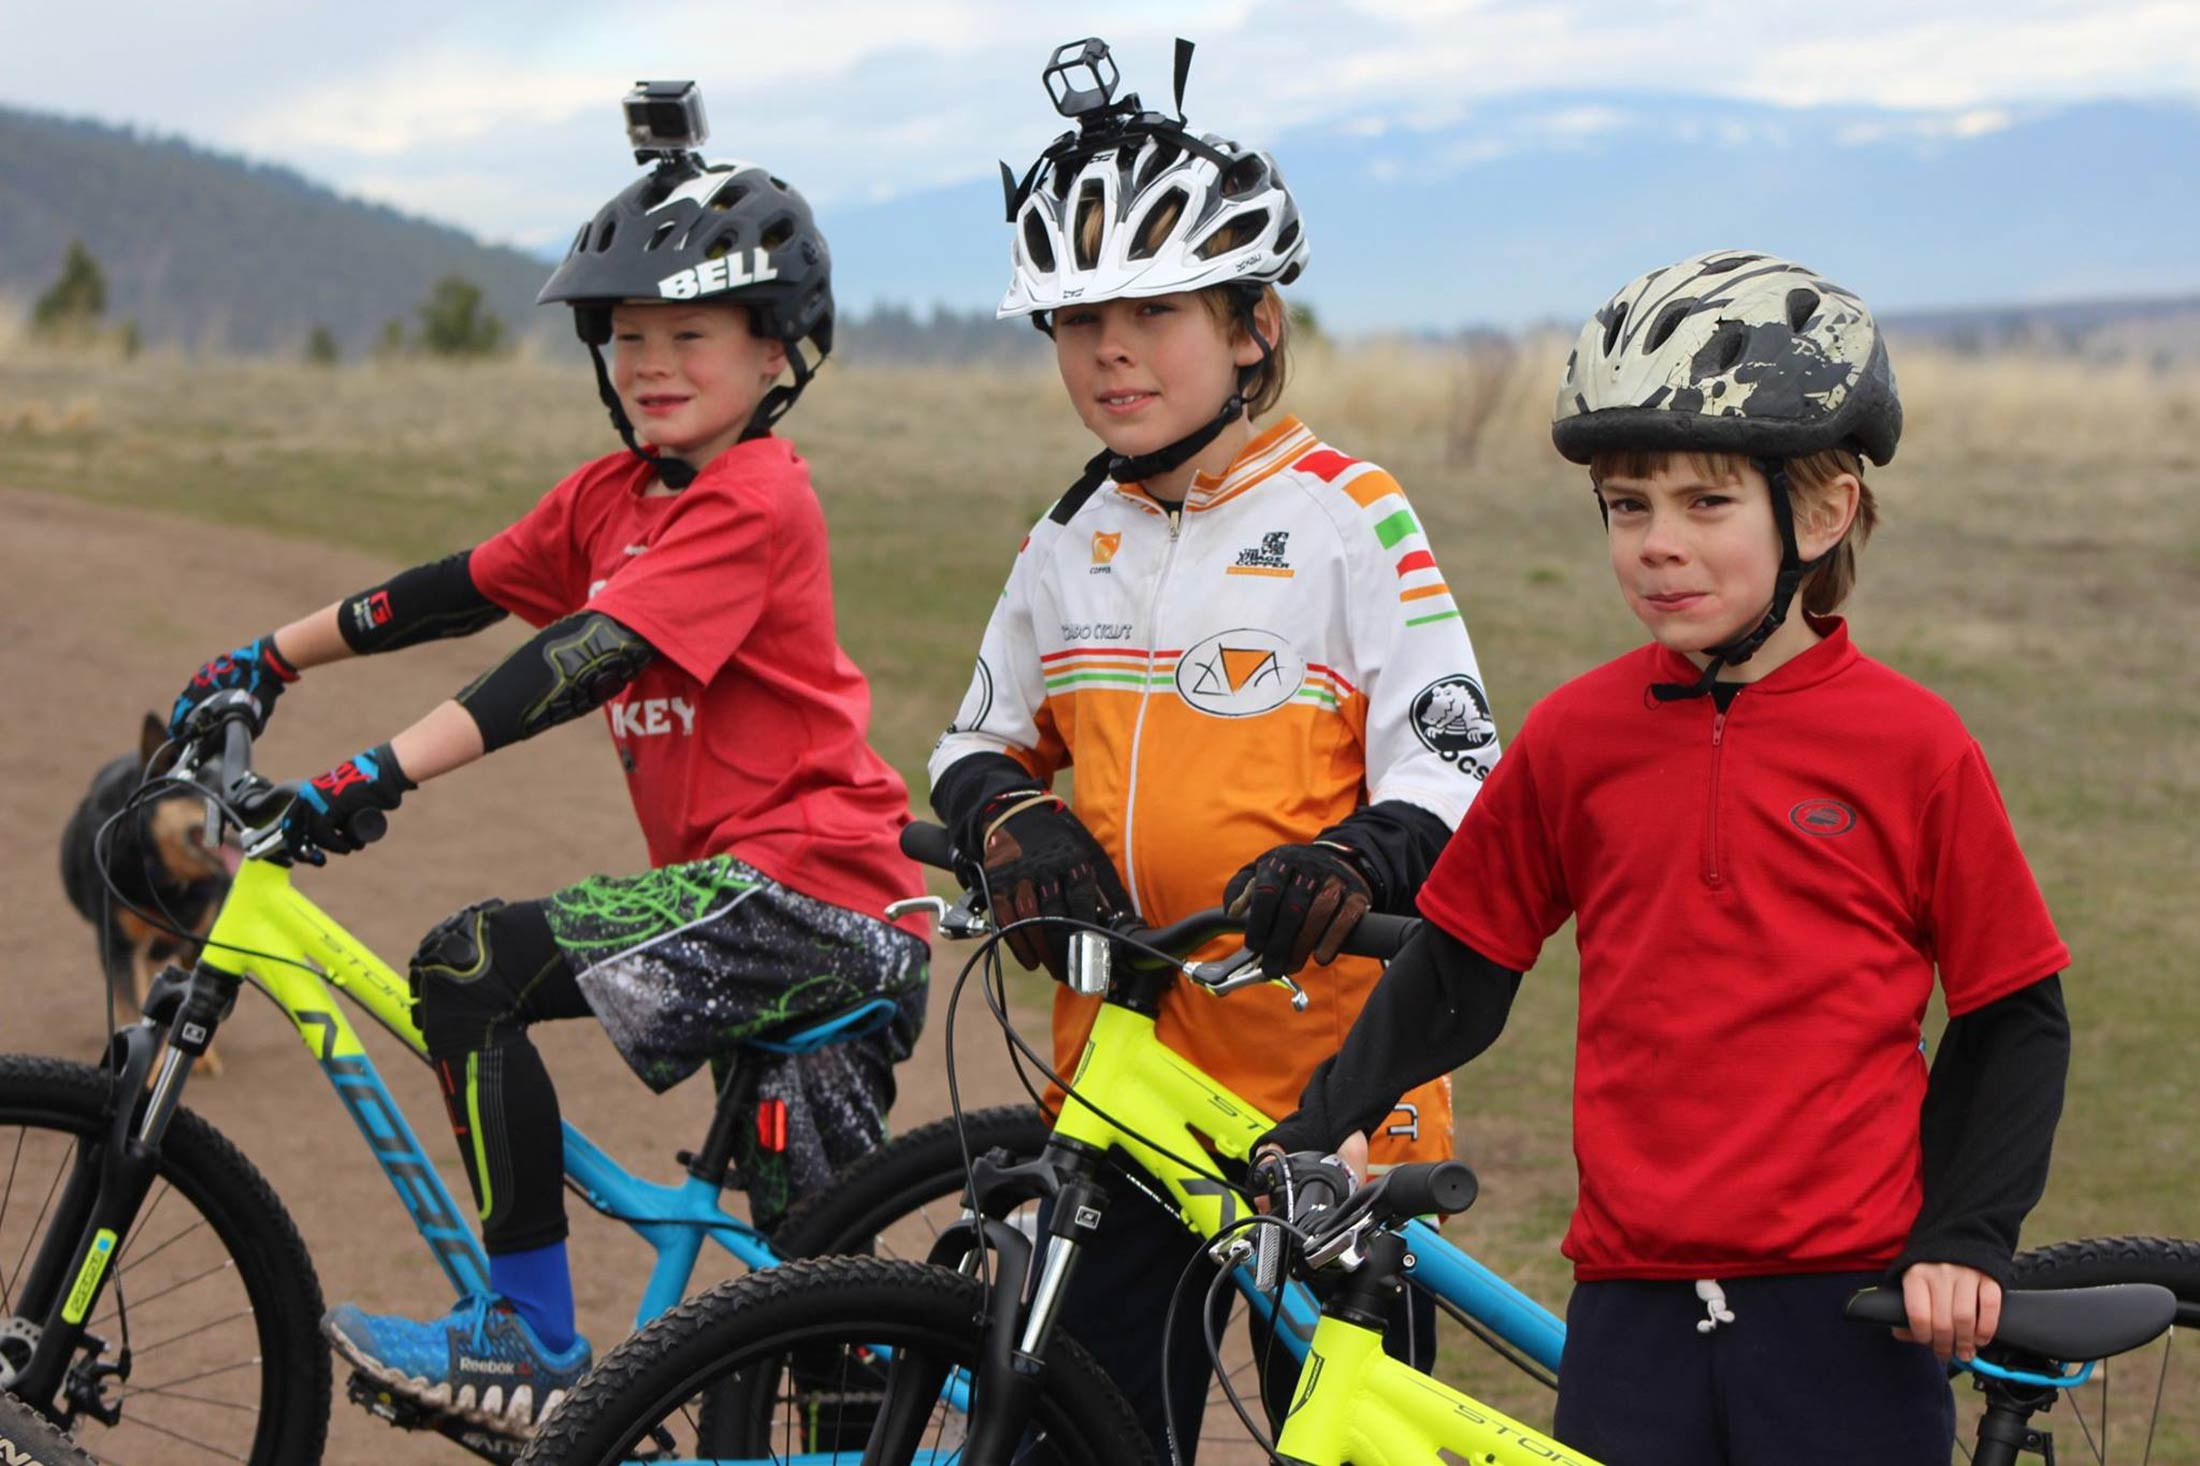 Young cyclists pose for a photo on the Bitterroot Trail